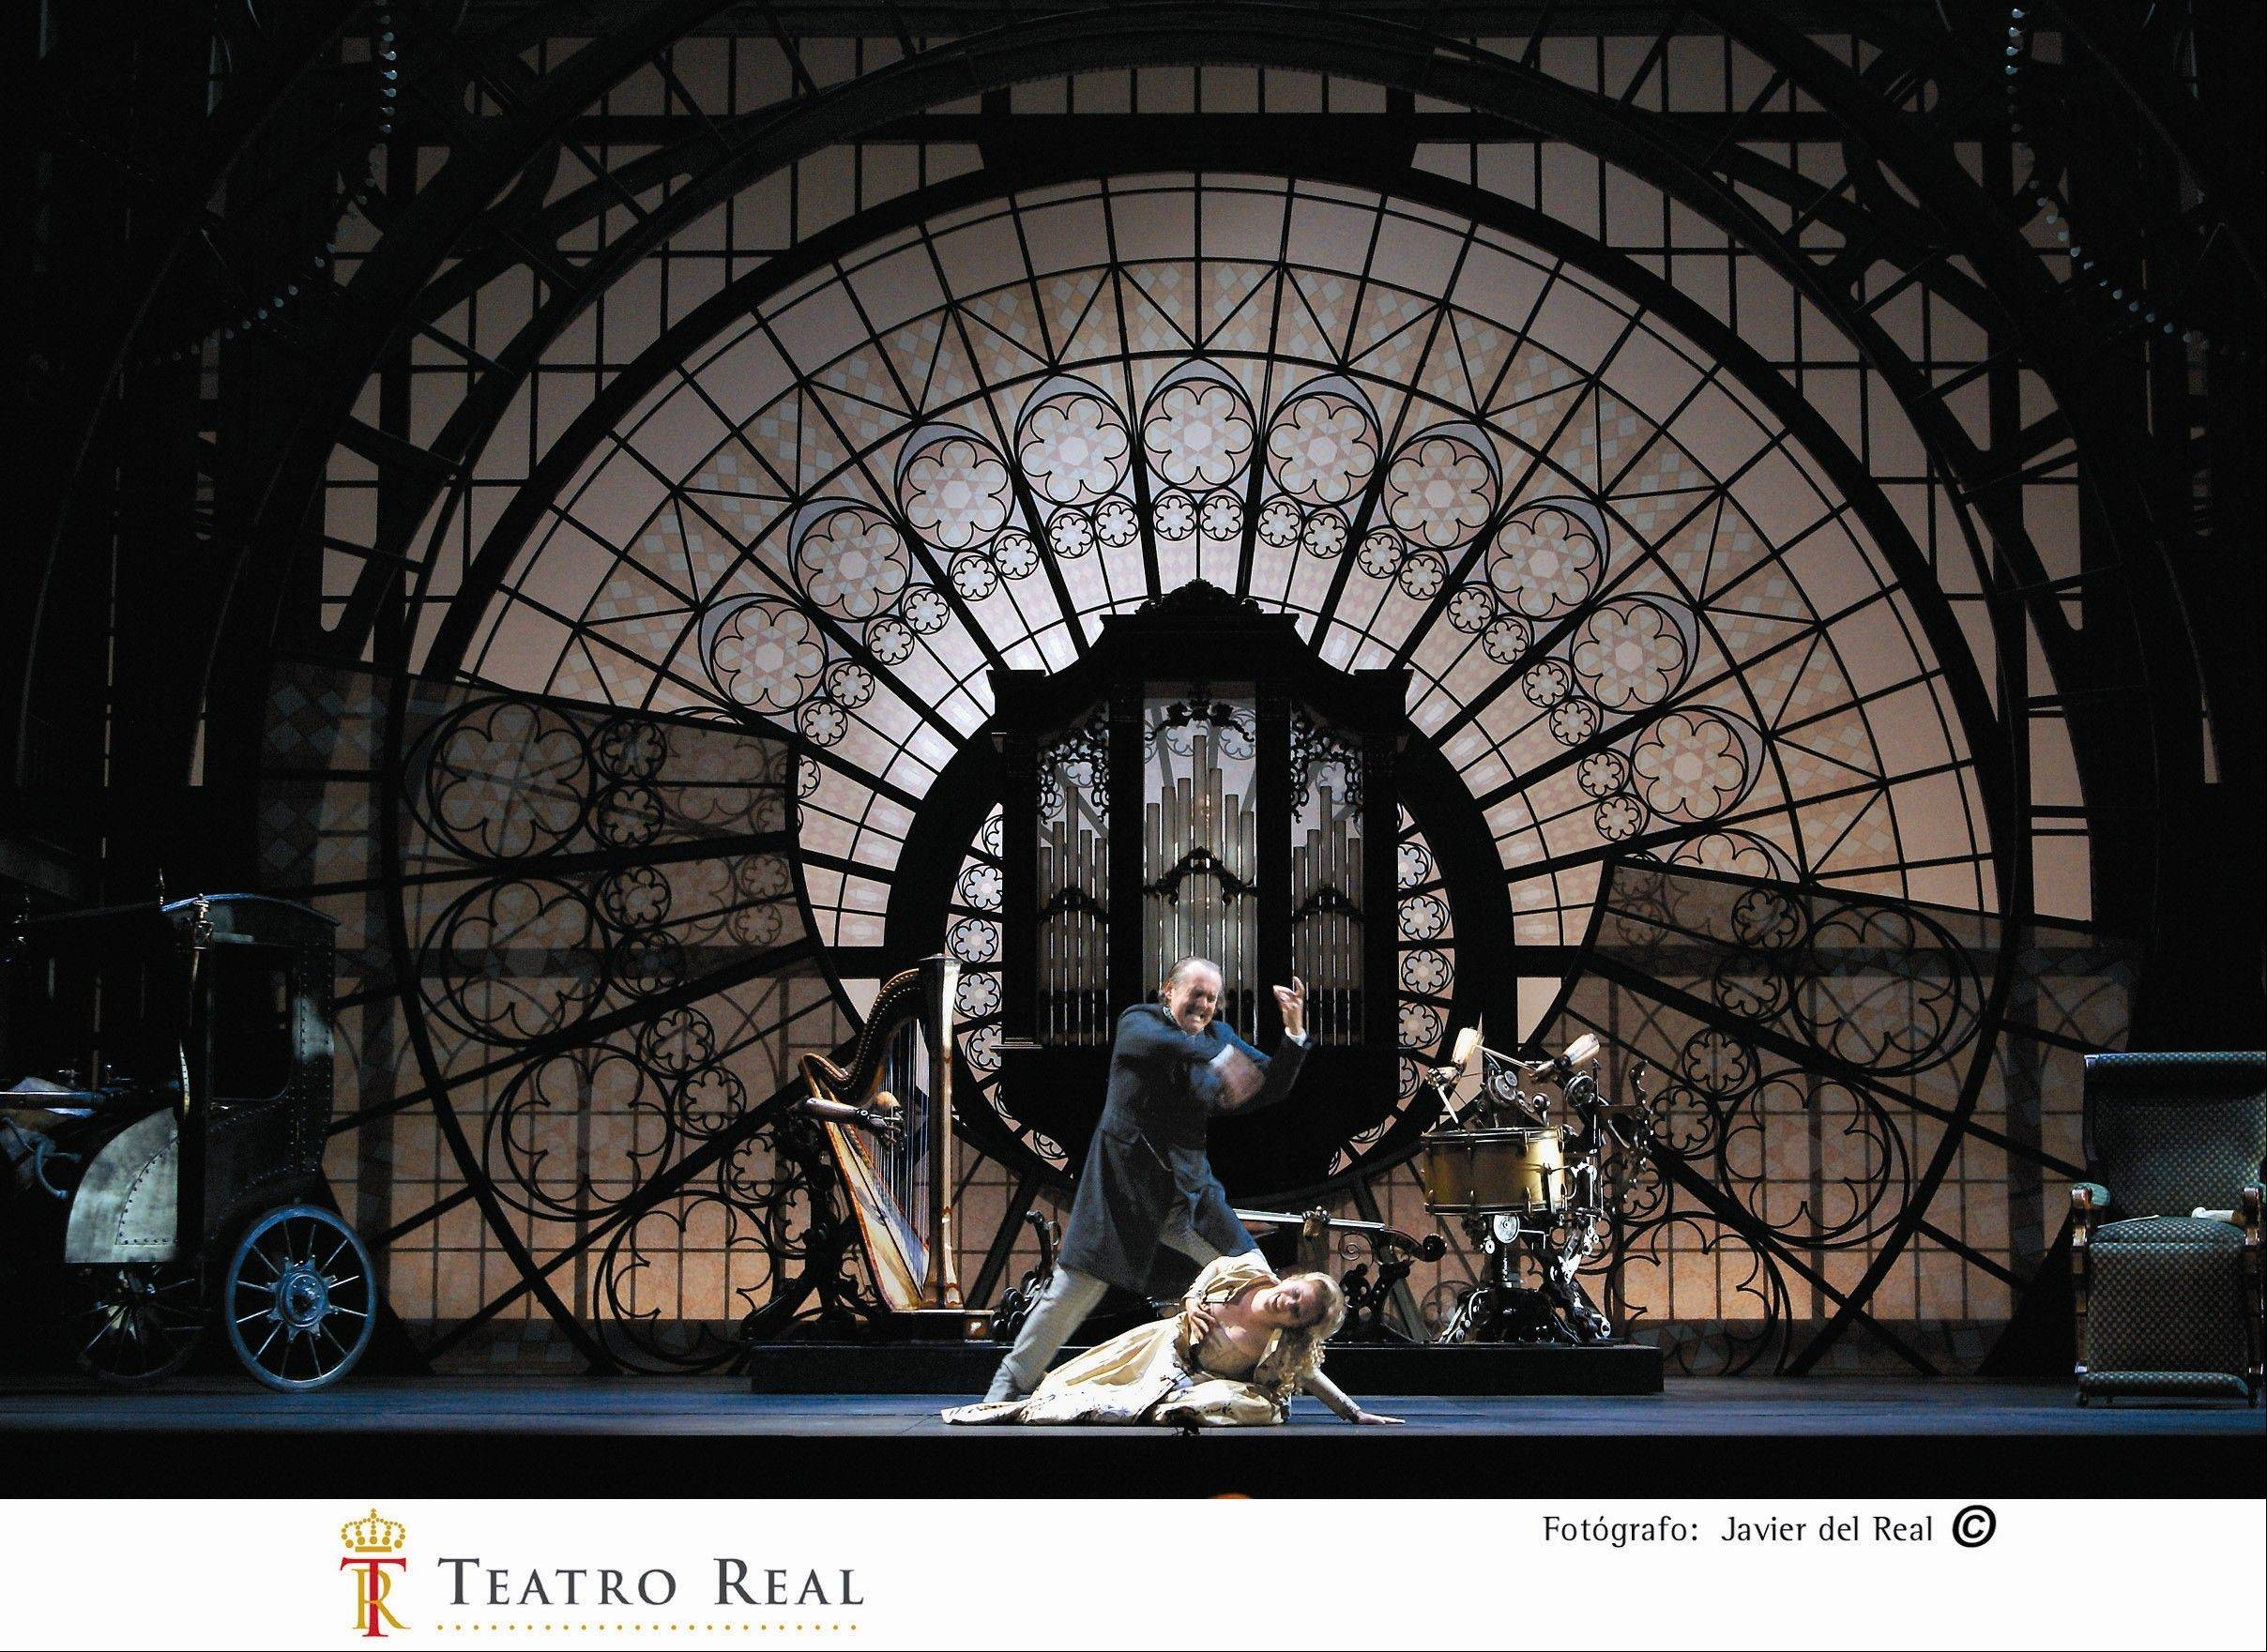 "The Lyric Opera of Chicago opens its 2011-12 season with Jacques Offenbach's grand French opera ""The Tales of Hoffmann"" in Nicholas Joel's 19th century train station-styled production."